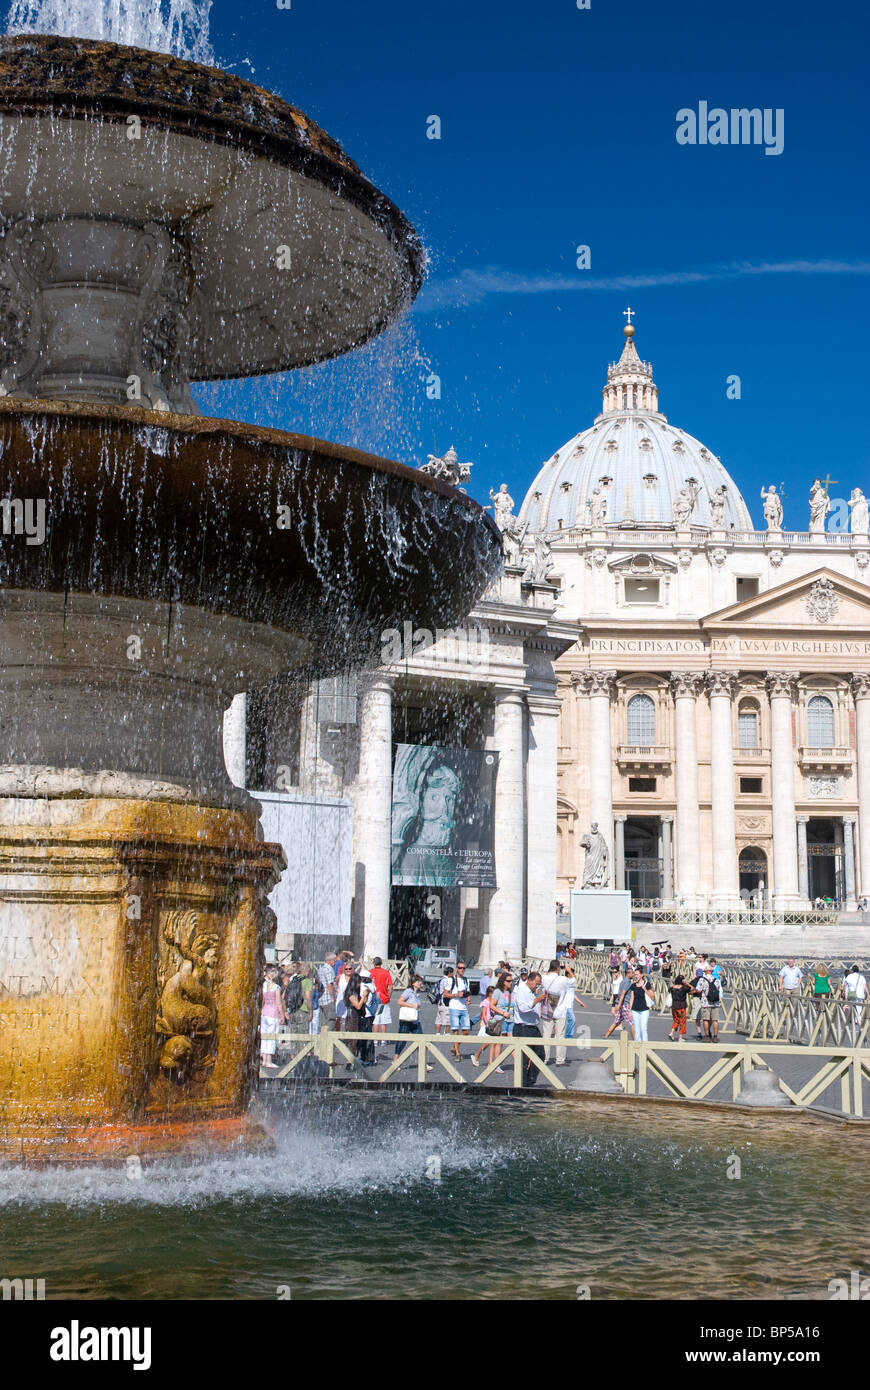 Fountain and St. Peter's Basilica, Rome - Stock Image